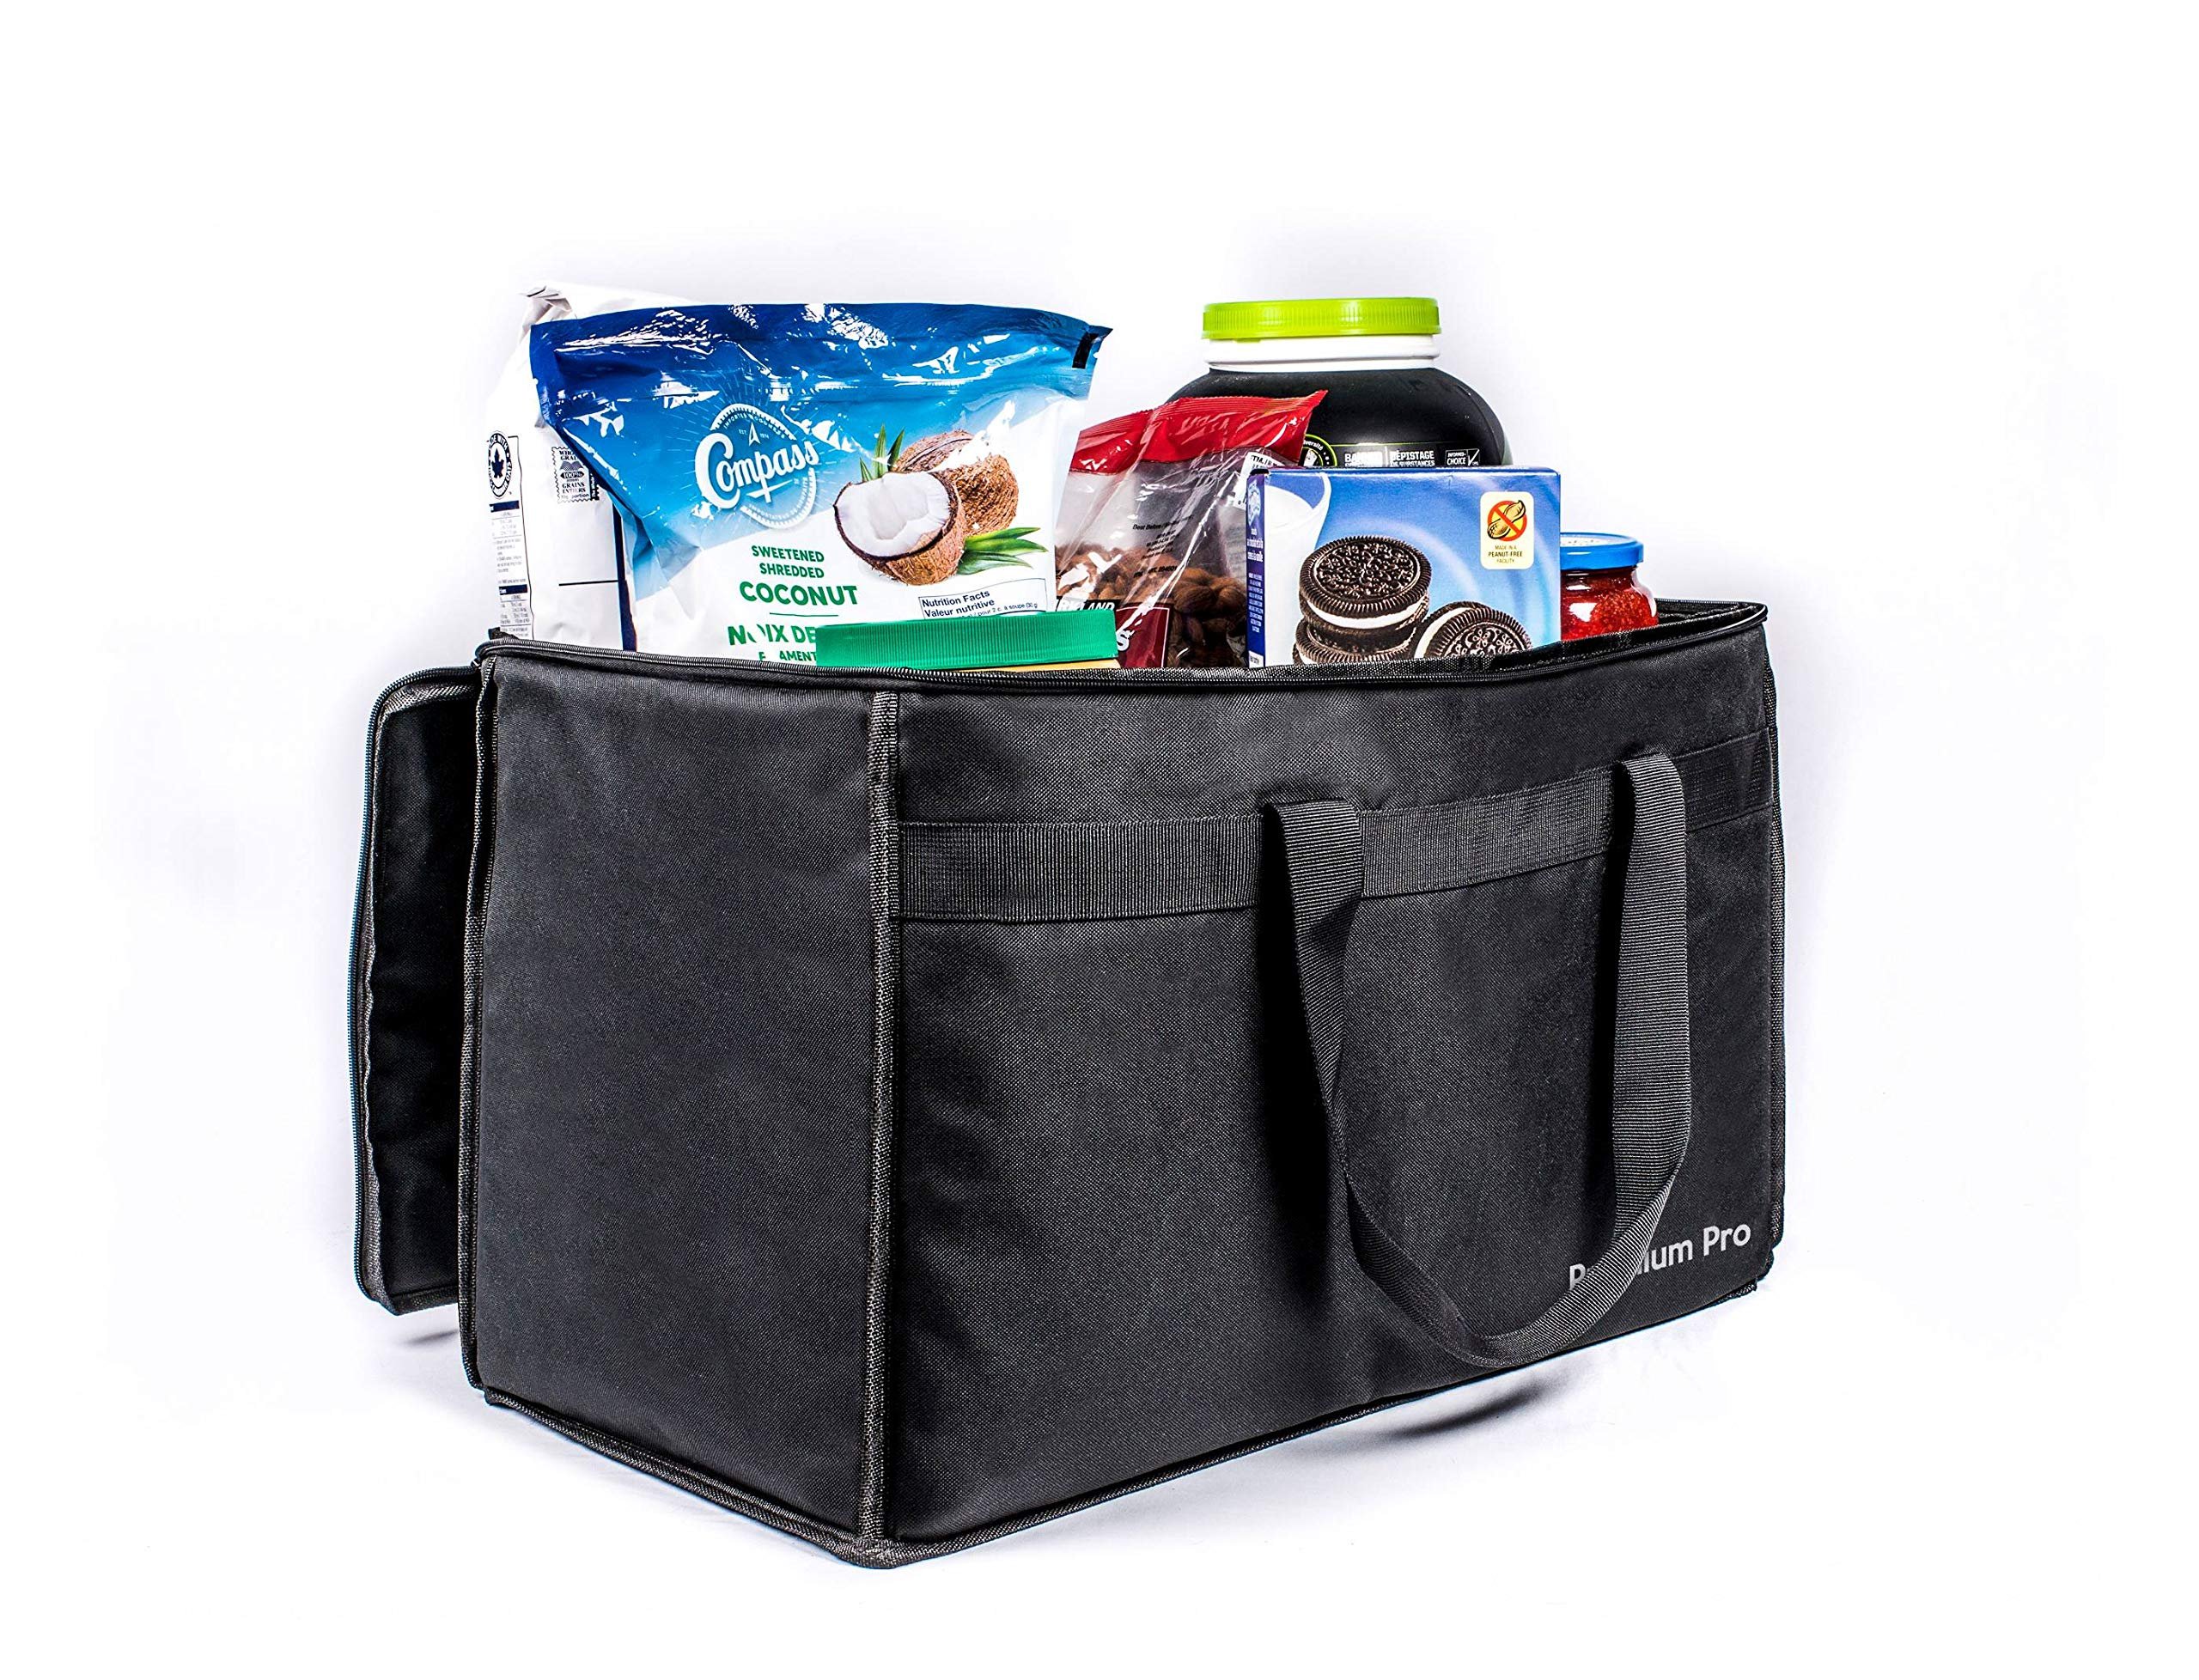 The Original Premium Pro Insulated Food Delivery Bag Perfect for Hot and Cold Food 23 x 15 x 13 Inch Heavy Duty Waterproof Lightweight Foldable Bag Suitable for Groceries, Food Delivery and Catering